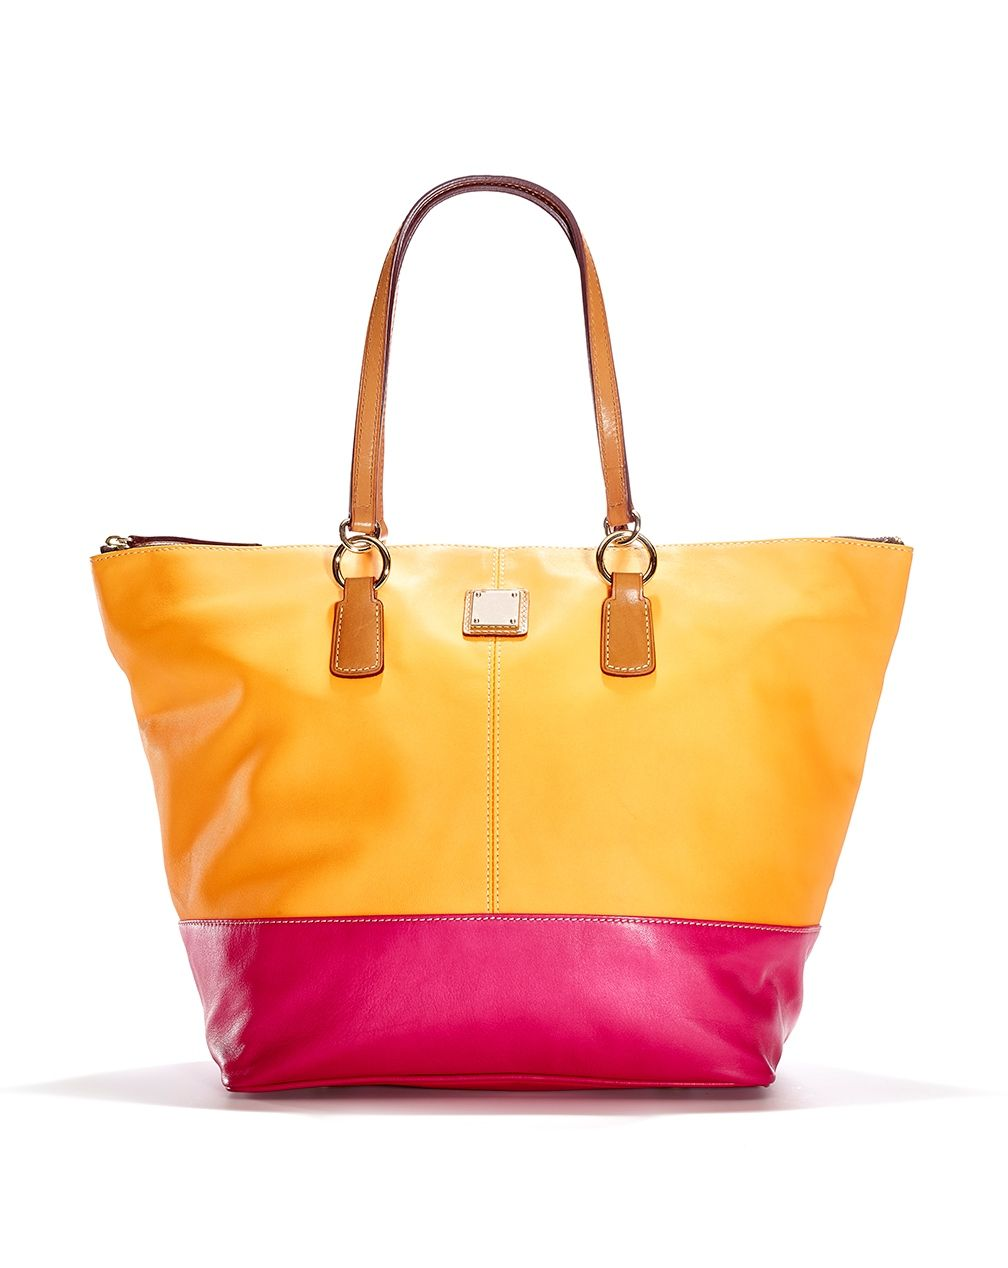 5d22c0727346 TOTE-ally in love with bright colored handbags!  maxxinista